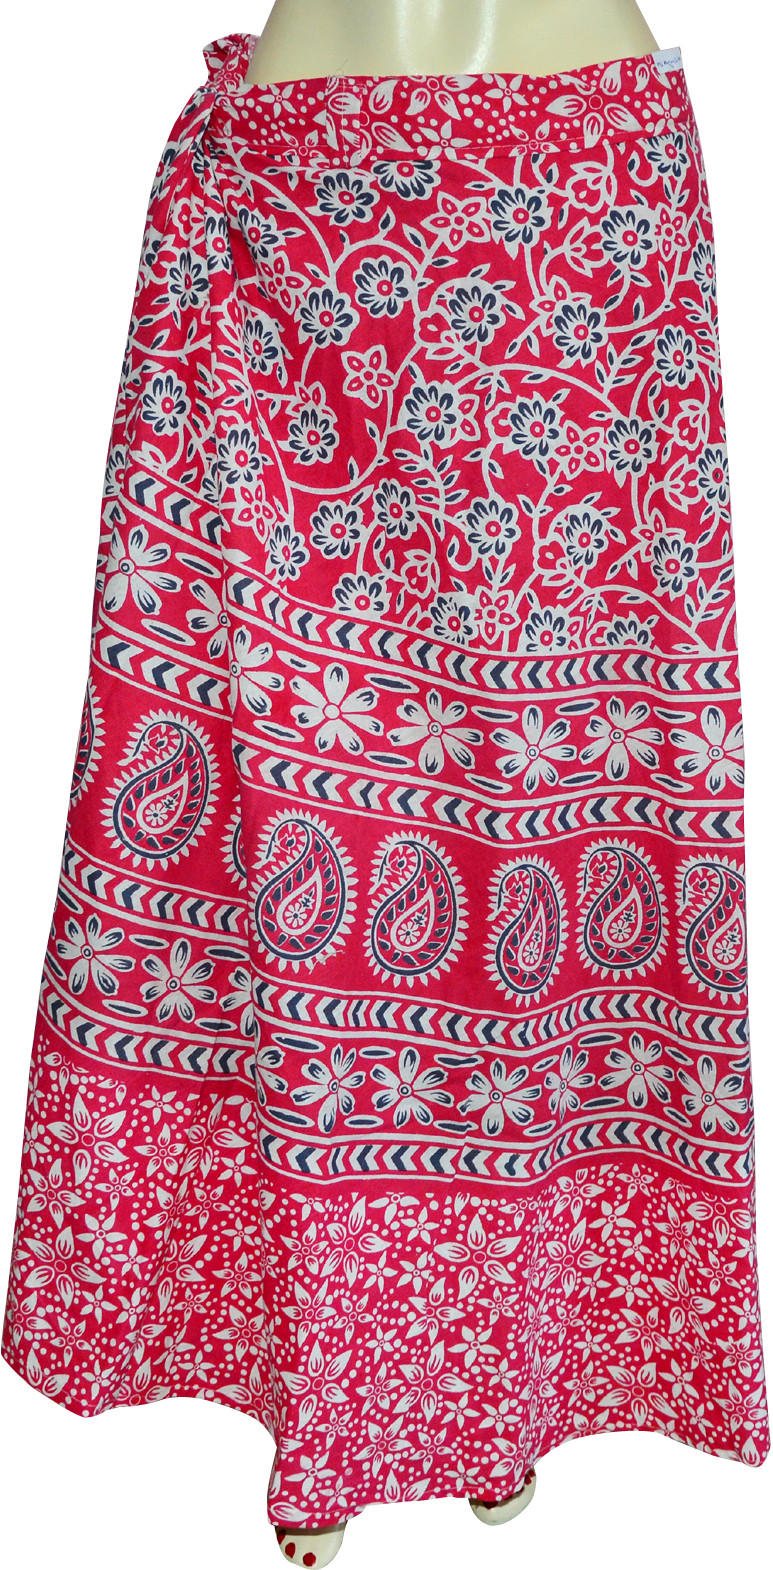 Marusthali Printed Womens Wrap Around Red, White, Blue Skirt